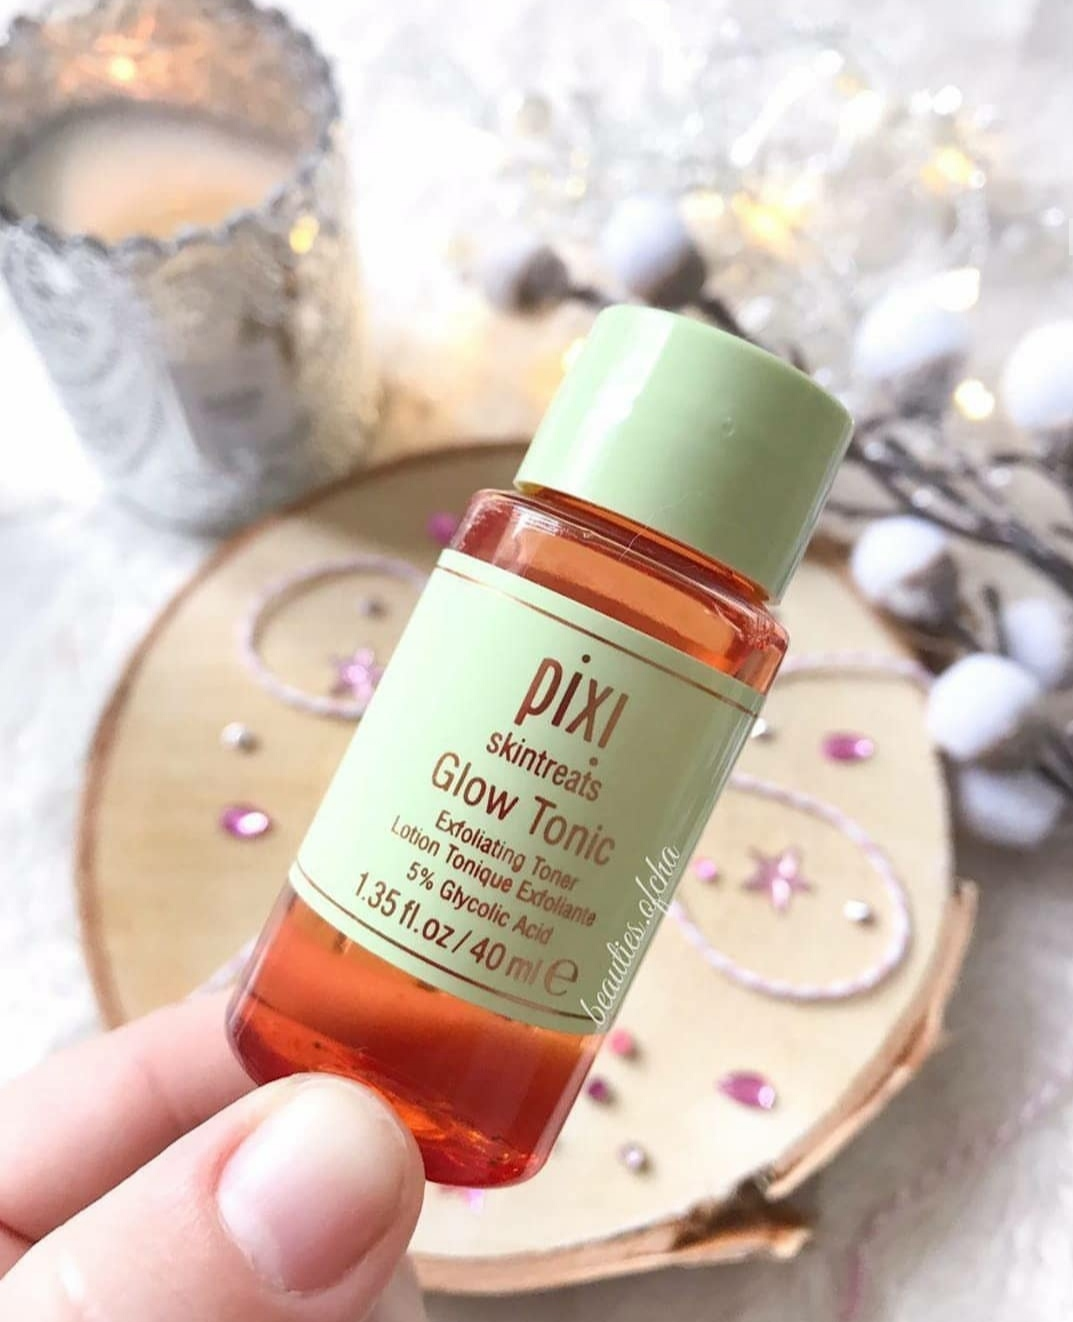 Pixi Glow Tonic-Awesome-By sudha26